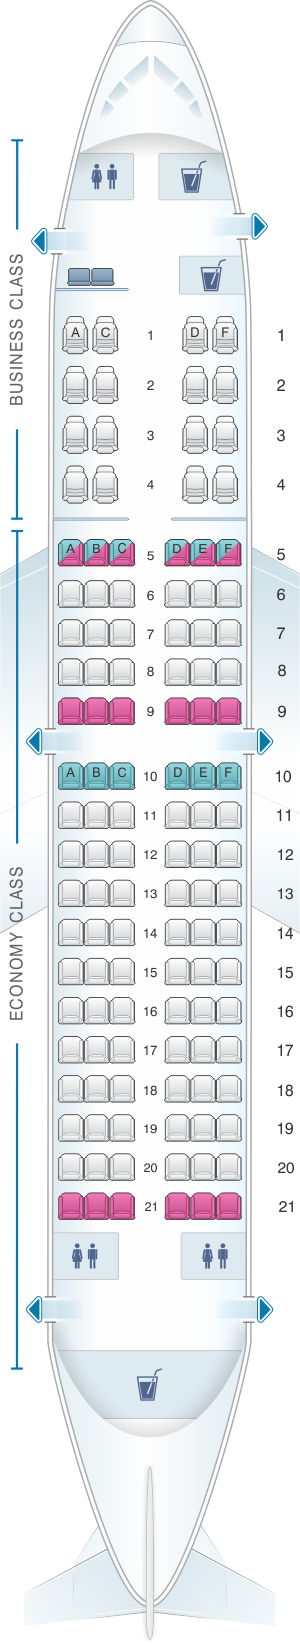 Seat map for TAROM Boeing B737 300 118pax